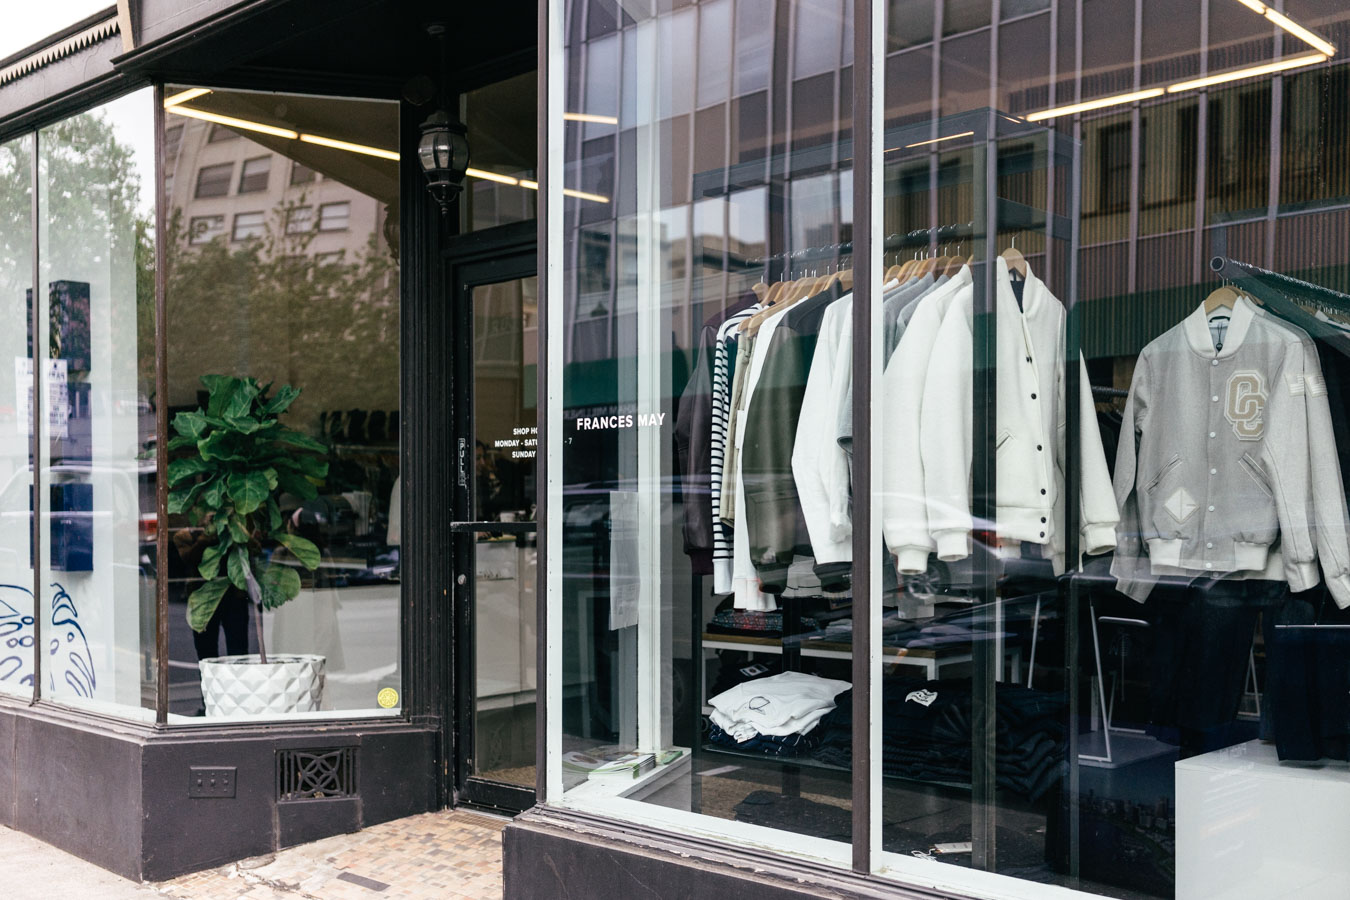 Frances May, a buyer fashion store, where we found many pieces we love.